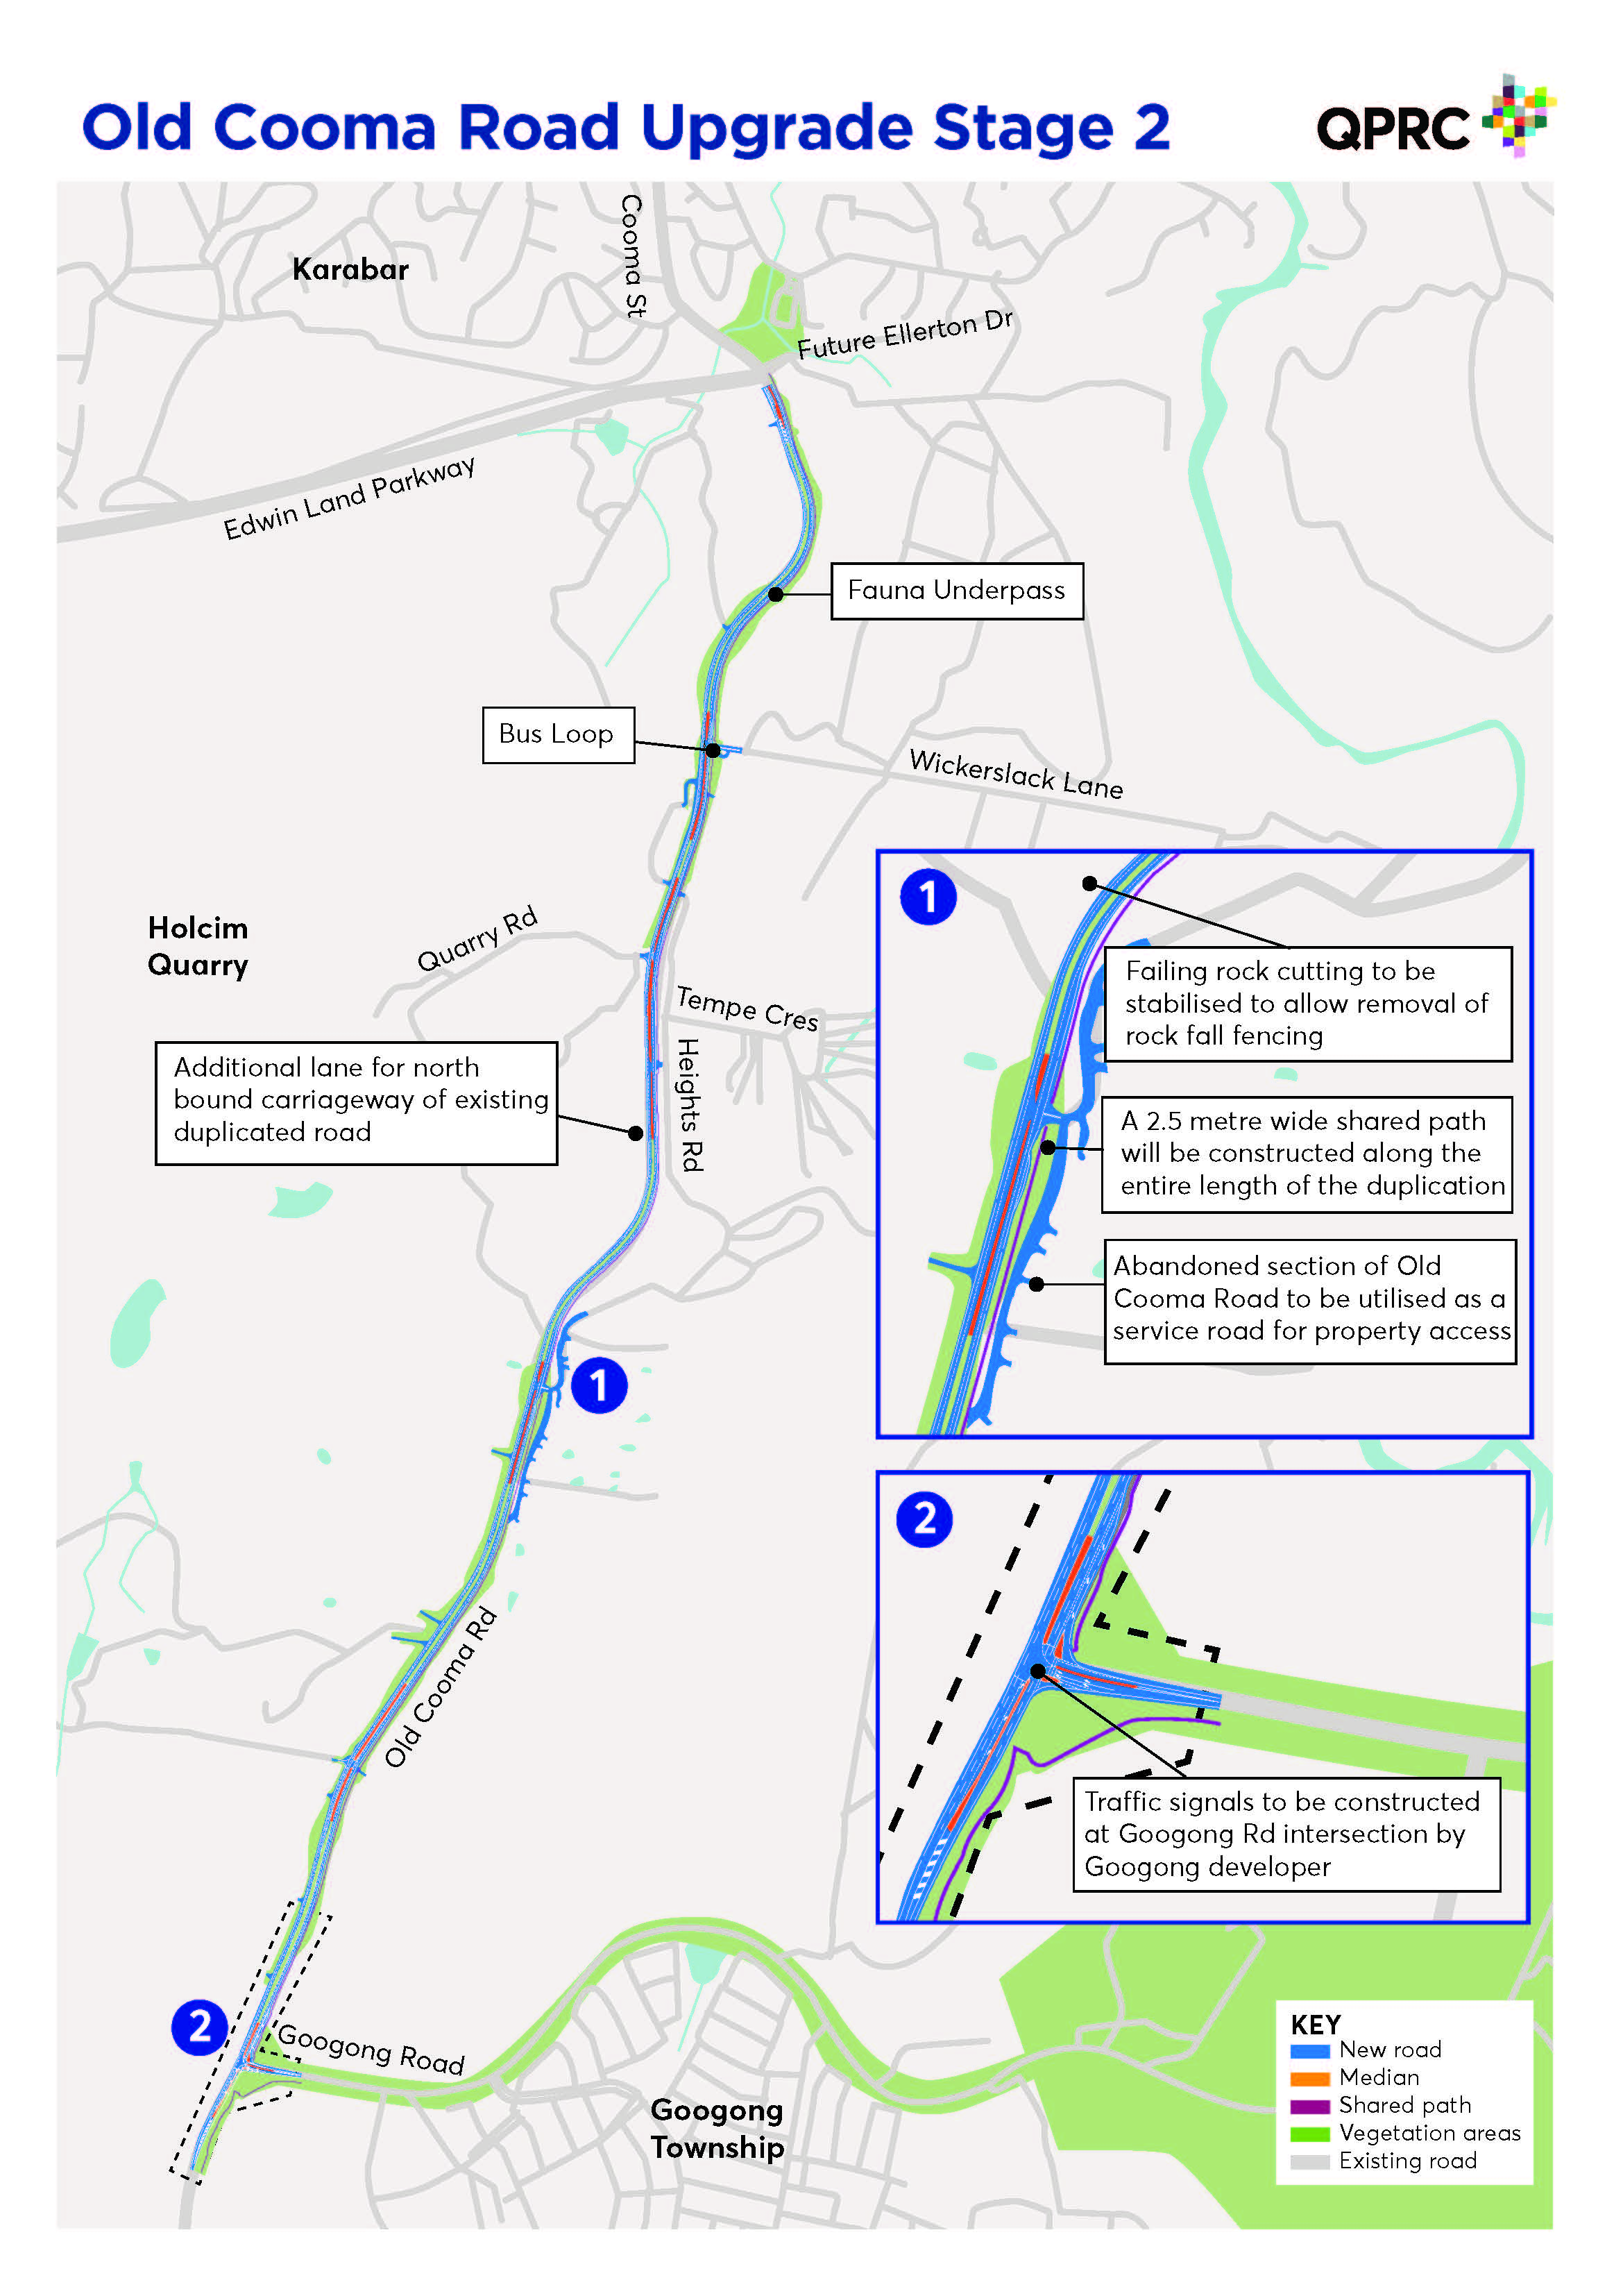 Map showing works for Old Cooma Rd Stage 2